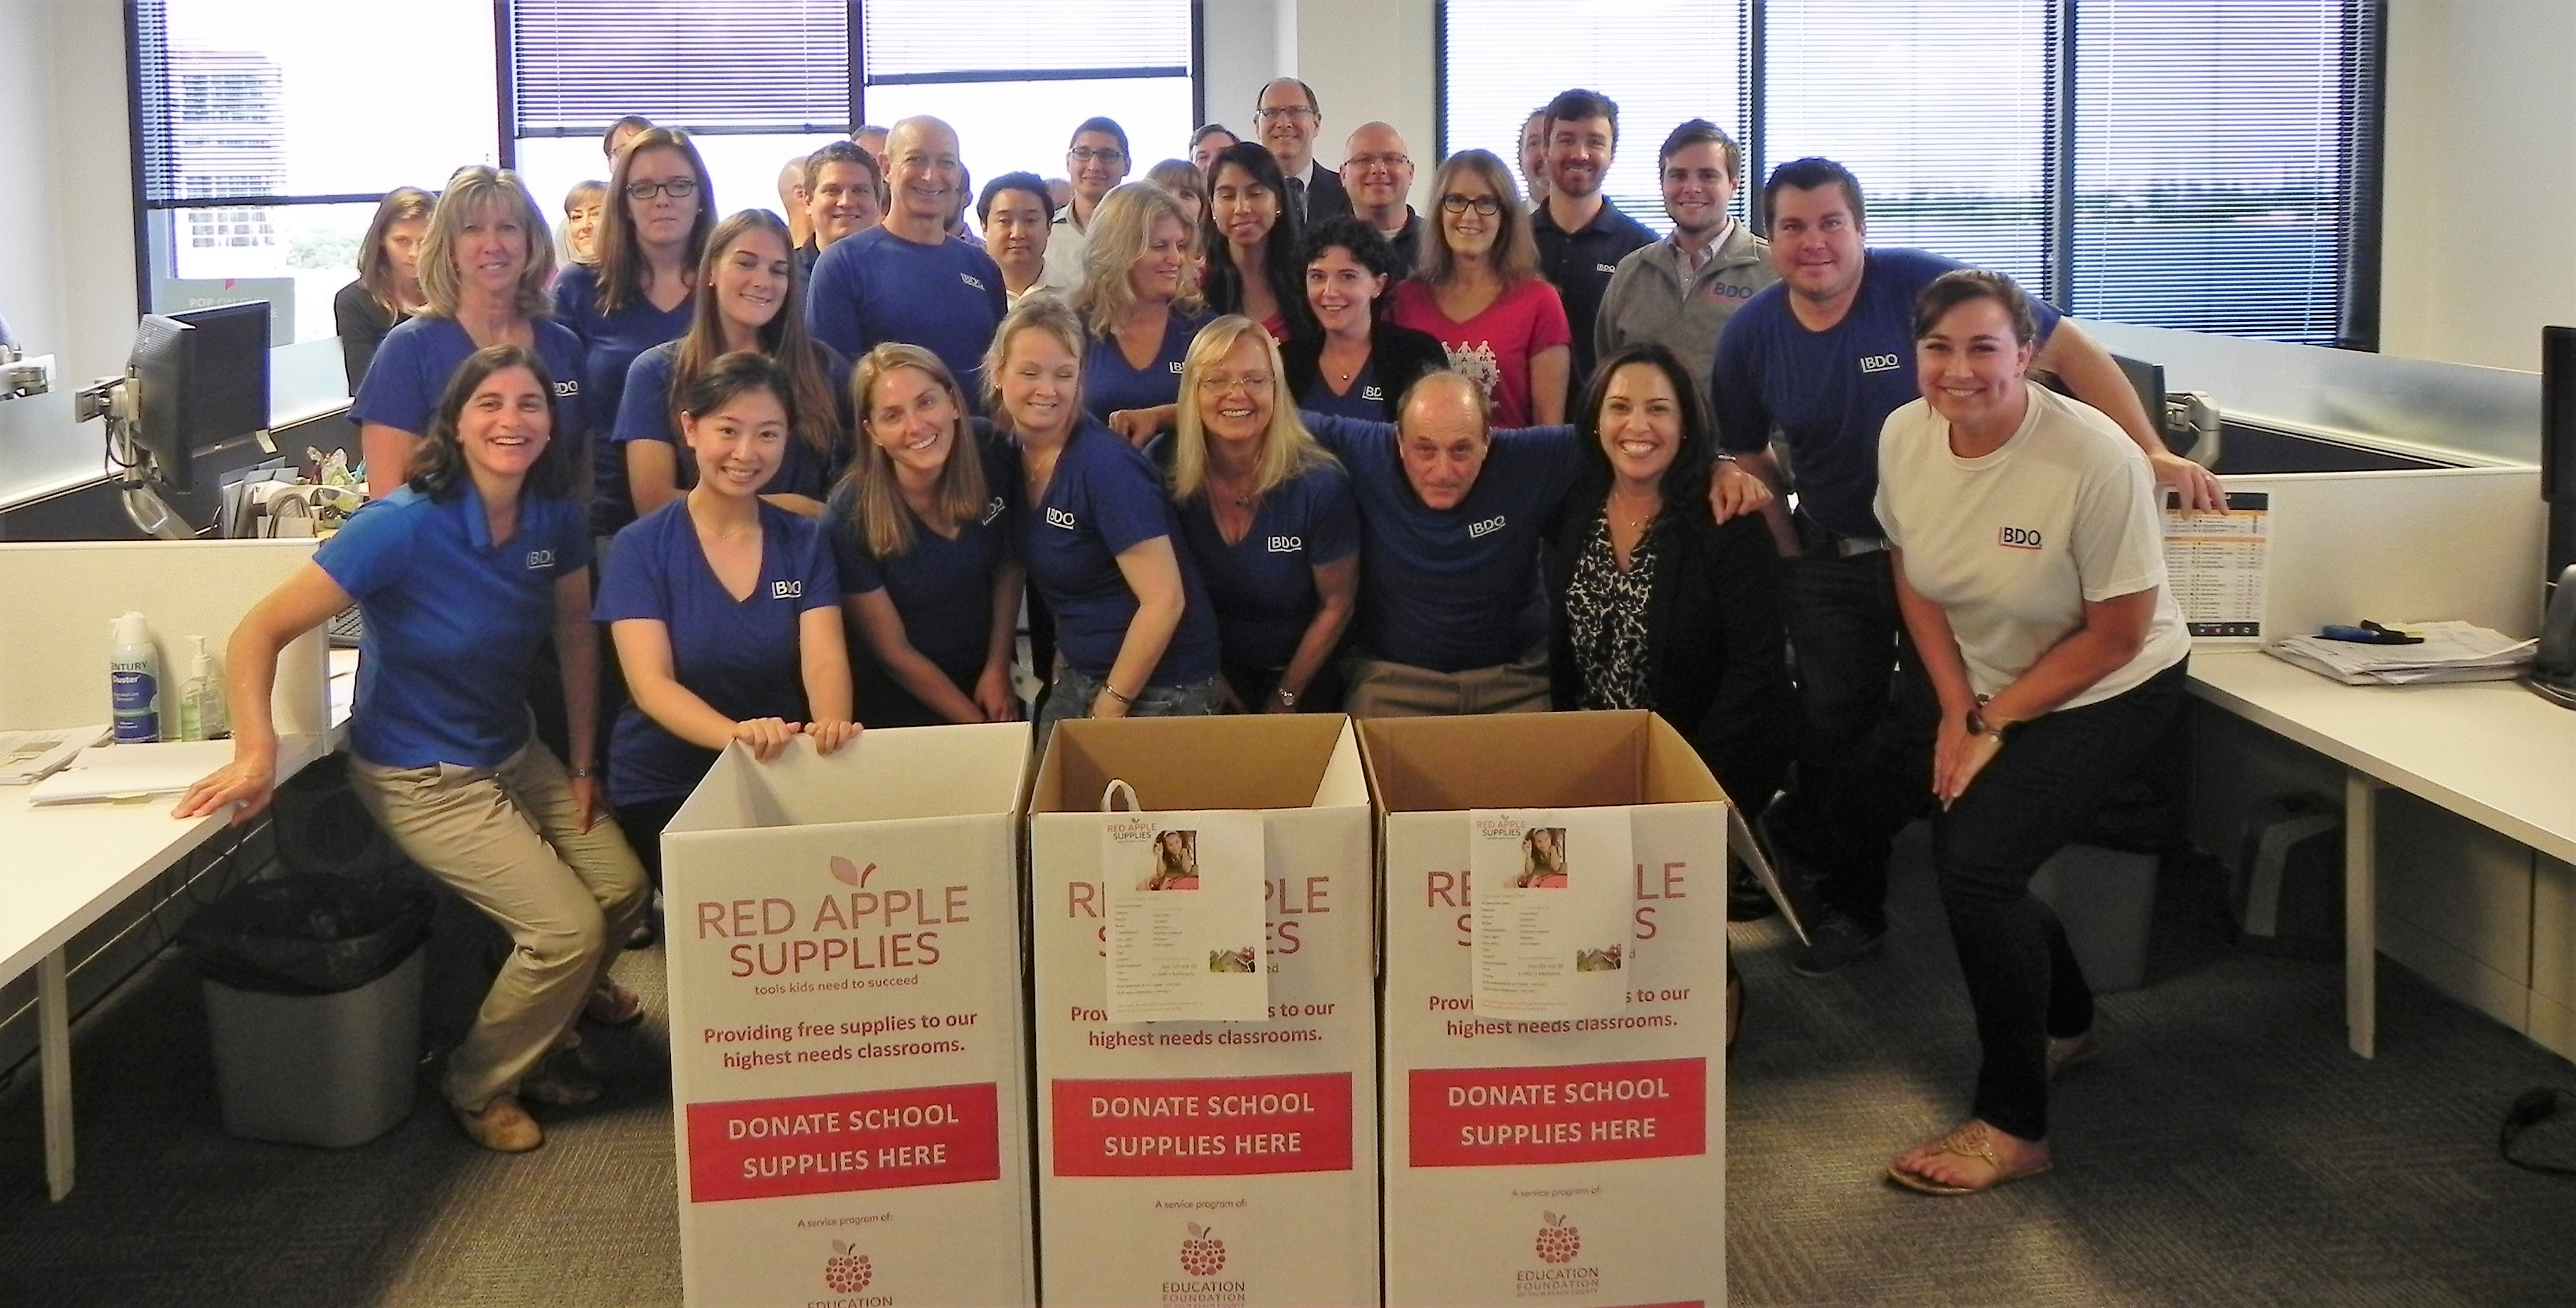 BDO employees celebrate their school supply drive